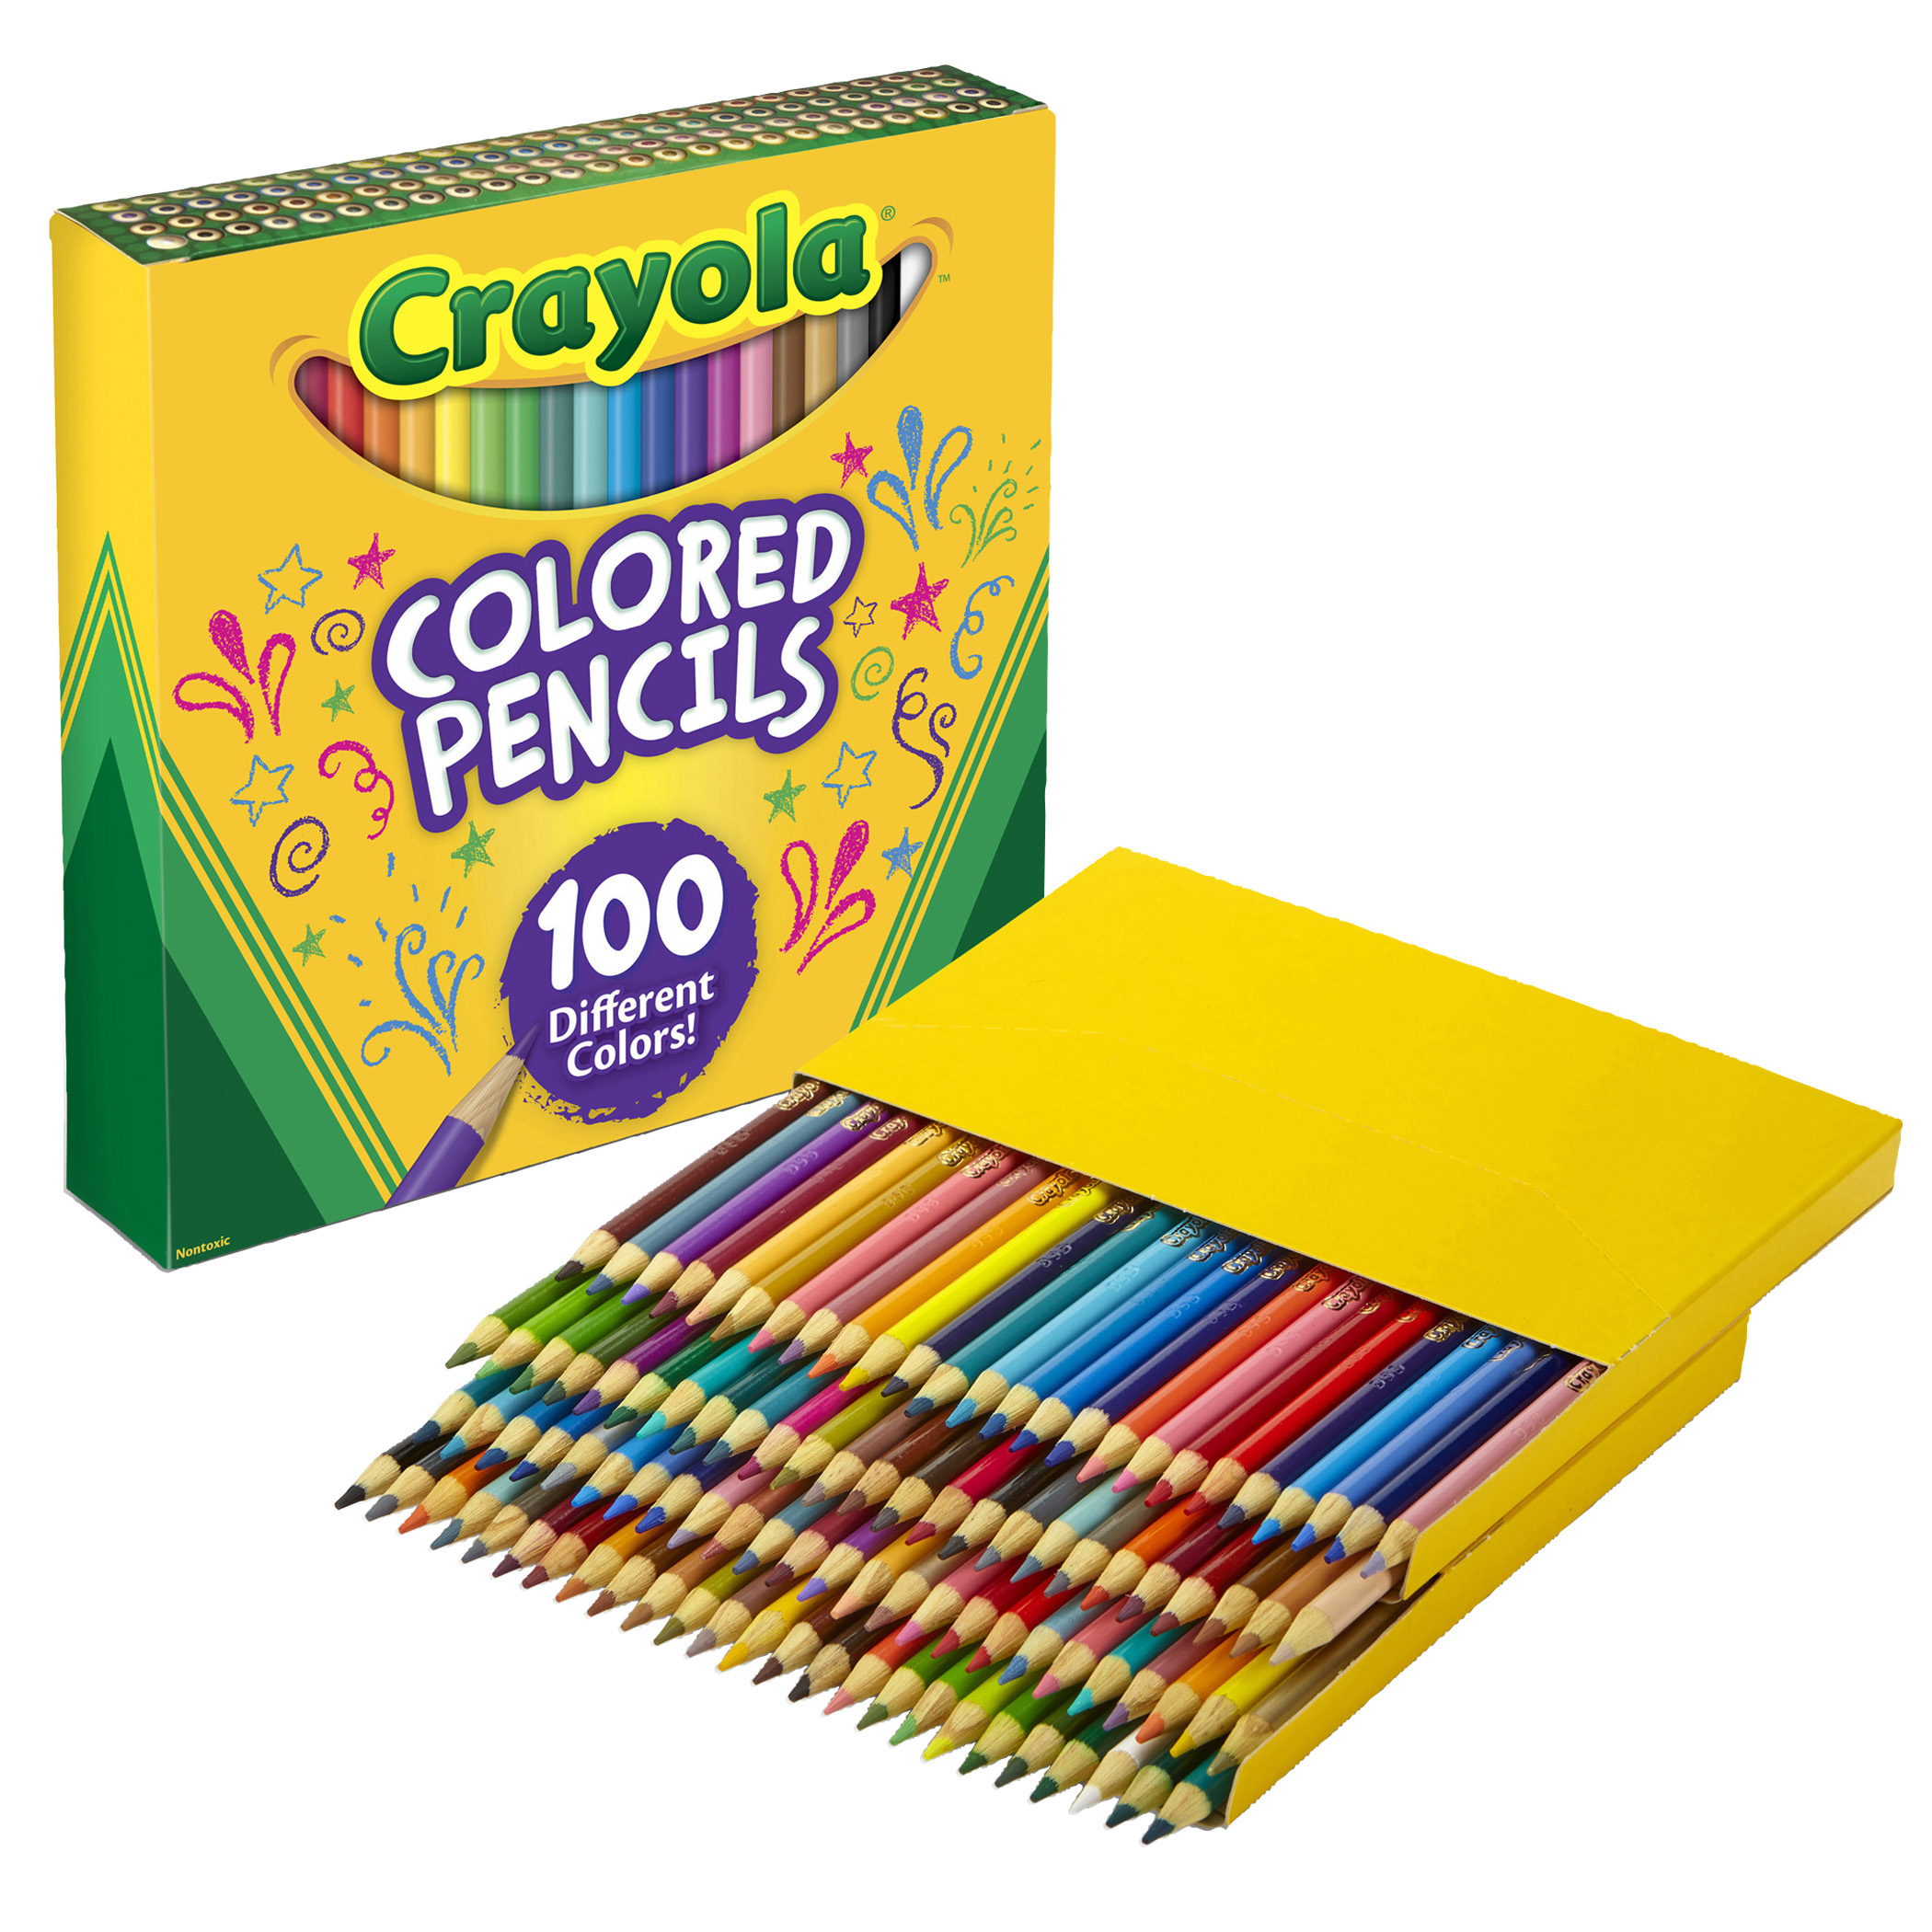 Crayola Colored Pencils, 100 Count by Crayola LLC